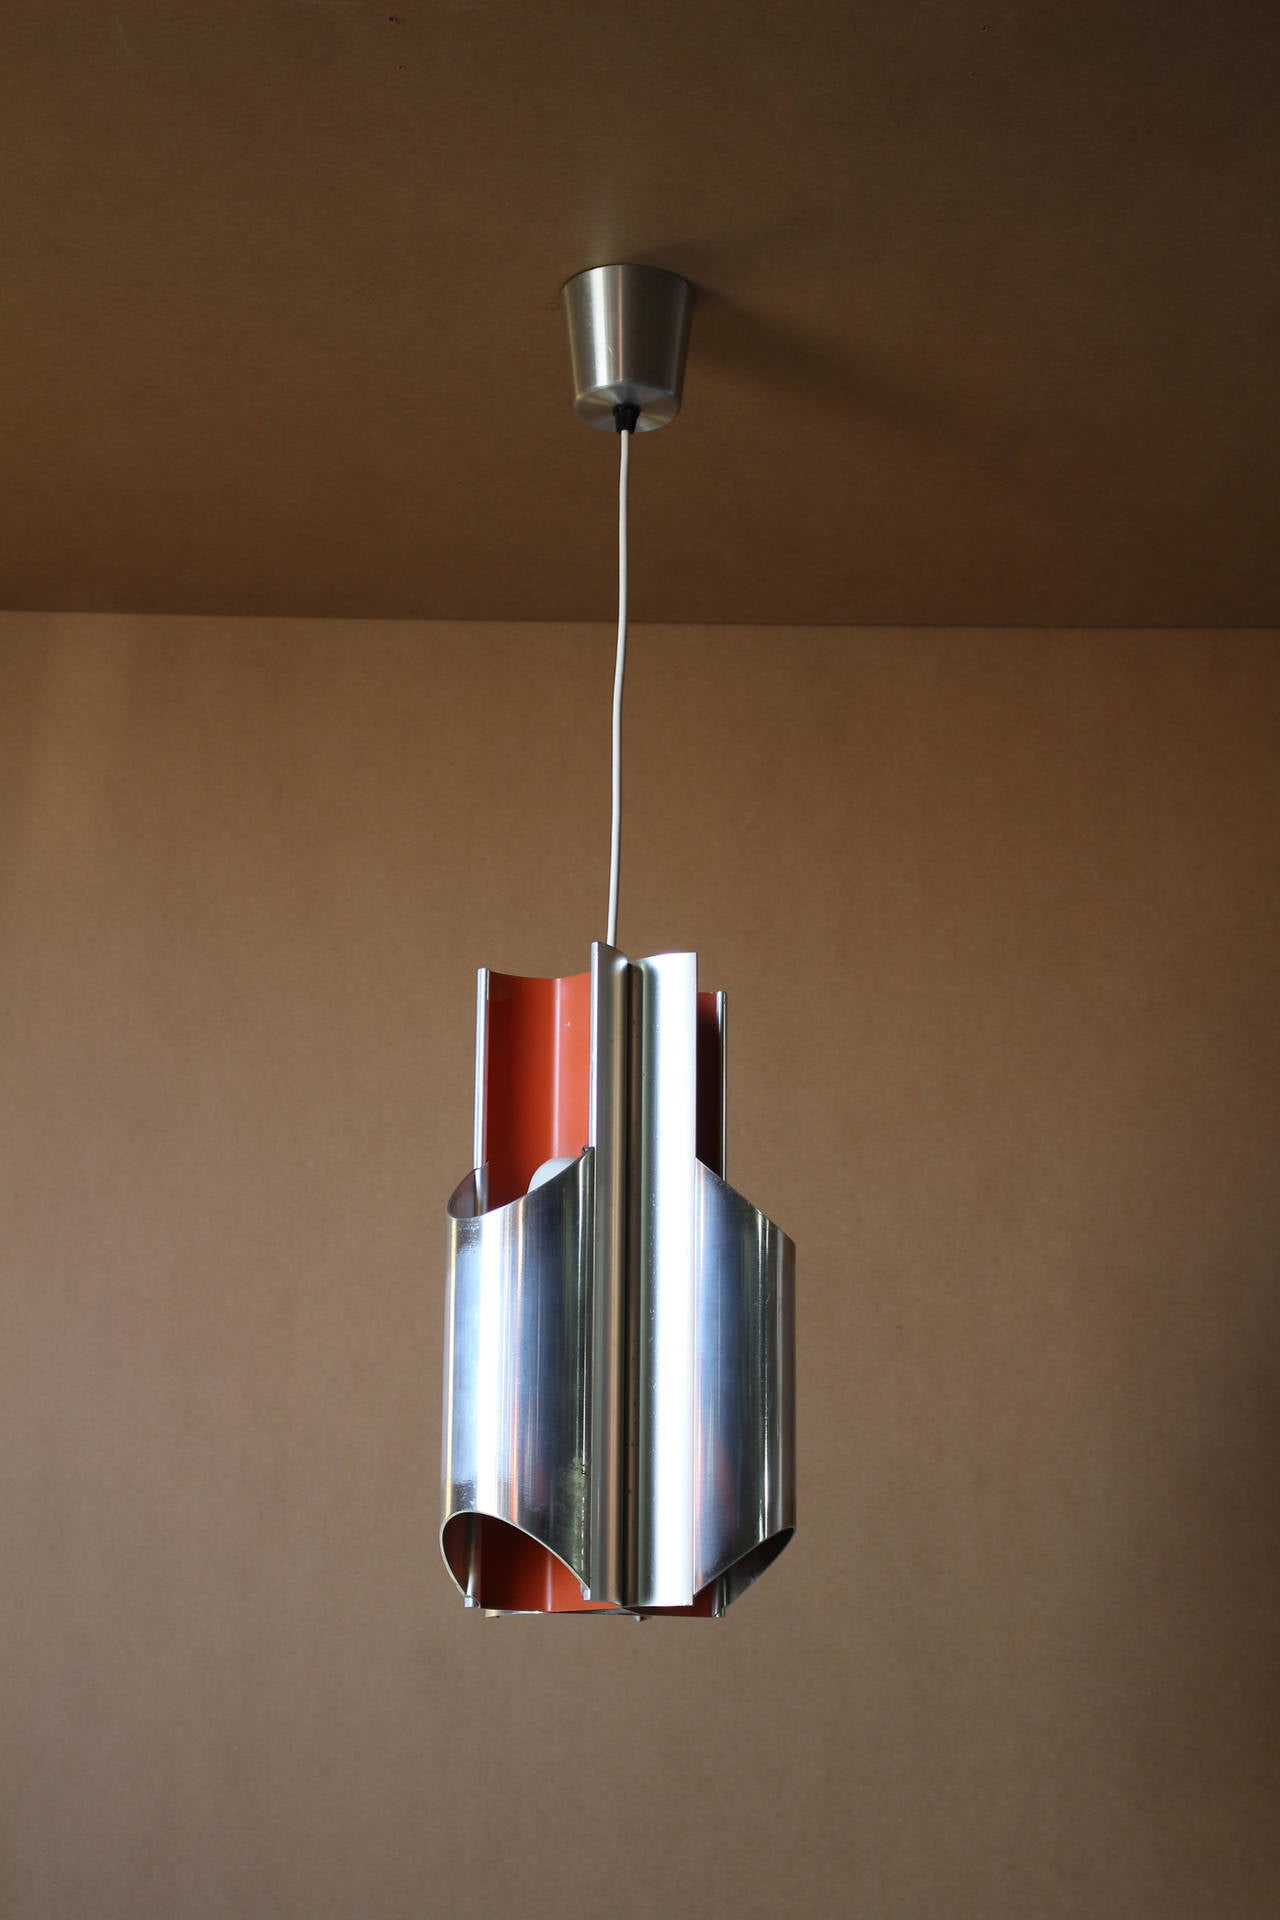 A 1960s Danish Pendant by Bent Karlby for Lyfa For Sale 4